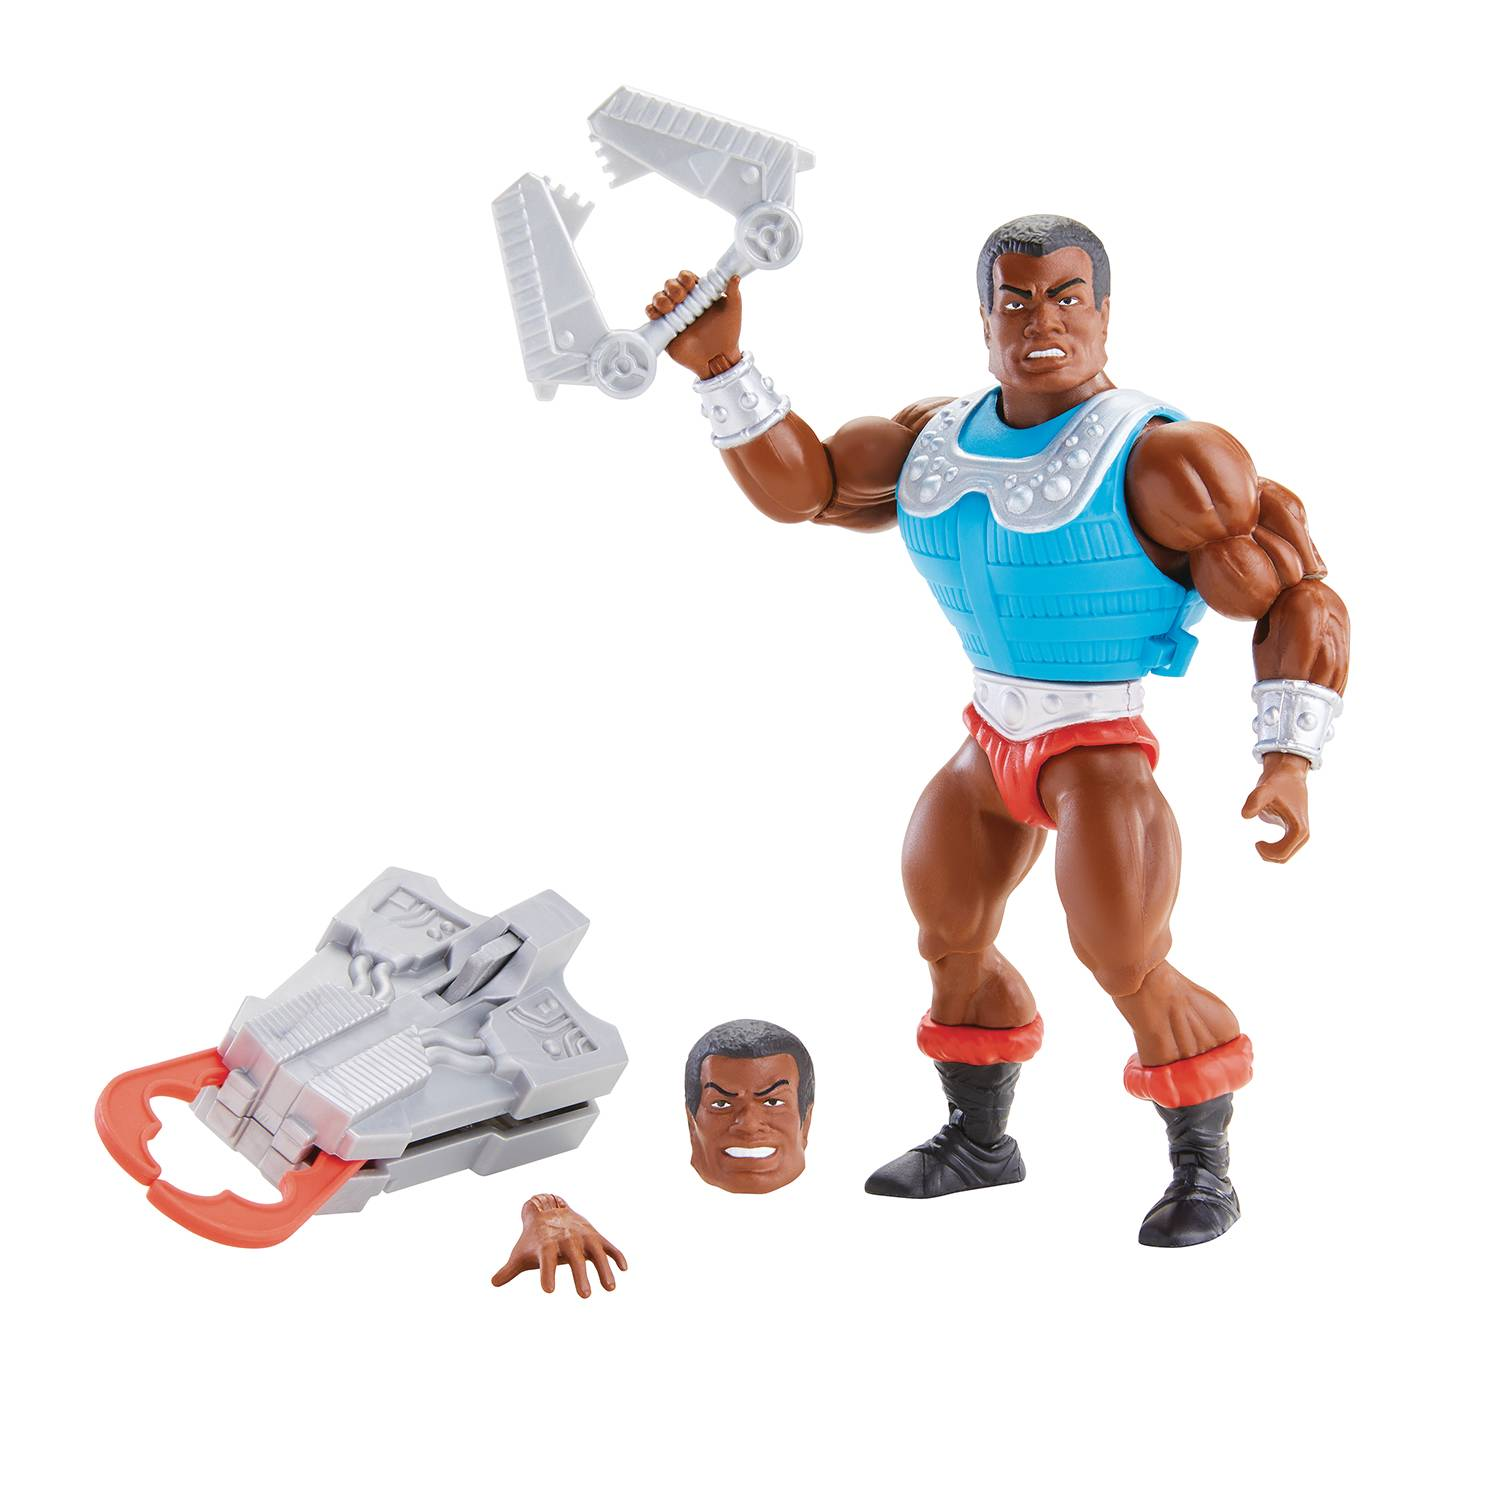 DELUXE CLAMP CHAMP - MASTERS OF THE UNIVERSE ORIGINS ACTION FIGURE